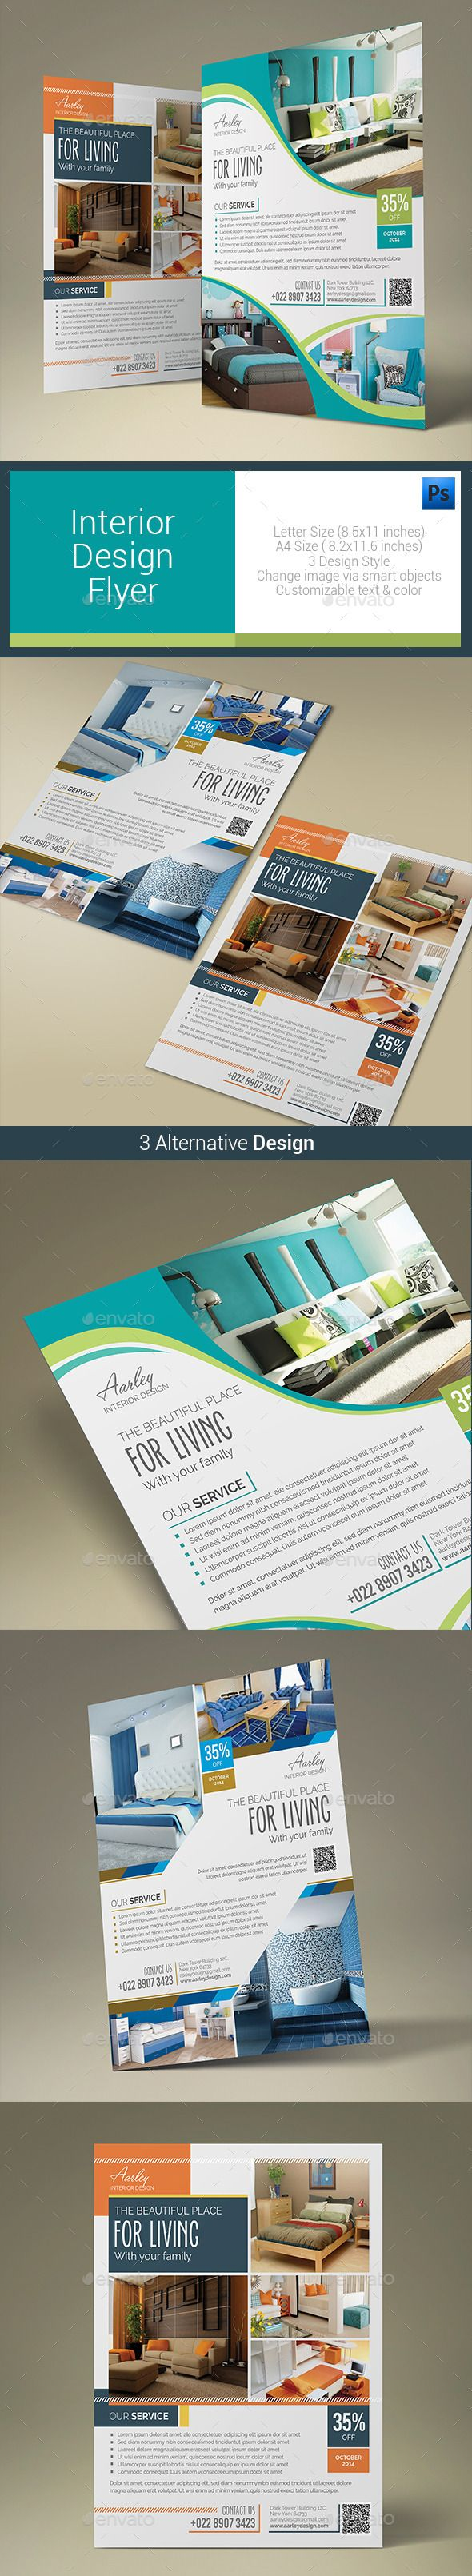 Interior Design Flyer — Photoshop PSD #magazine ad #brown • Available here → https://graphicriver.net/item/interior-design-flyer/10485606?ref=pxcr